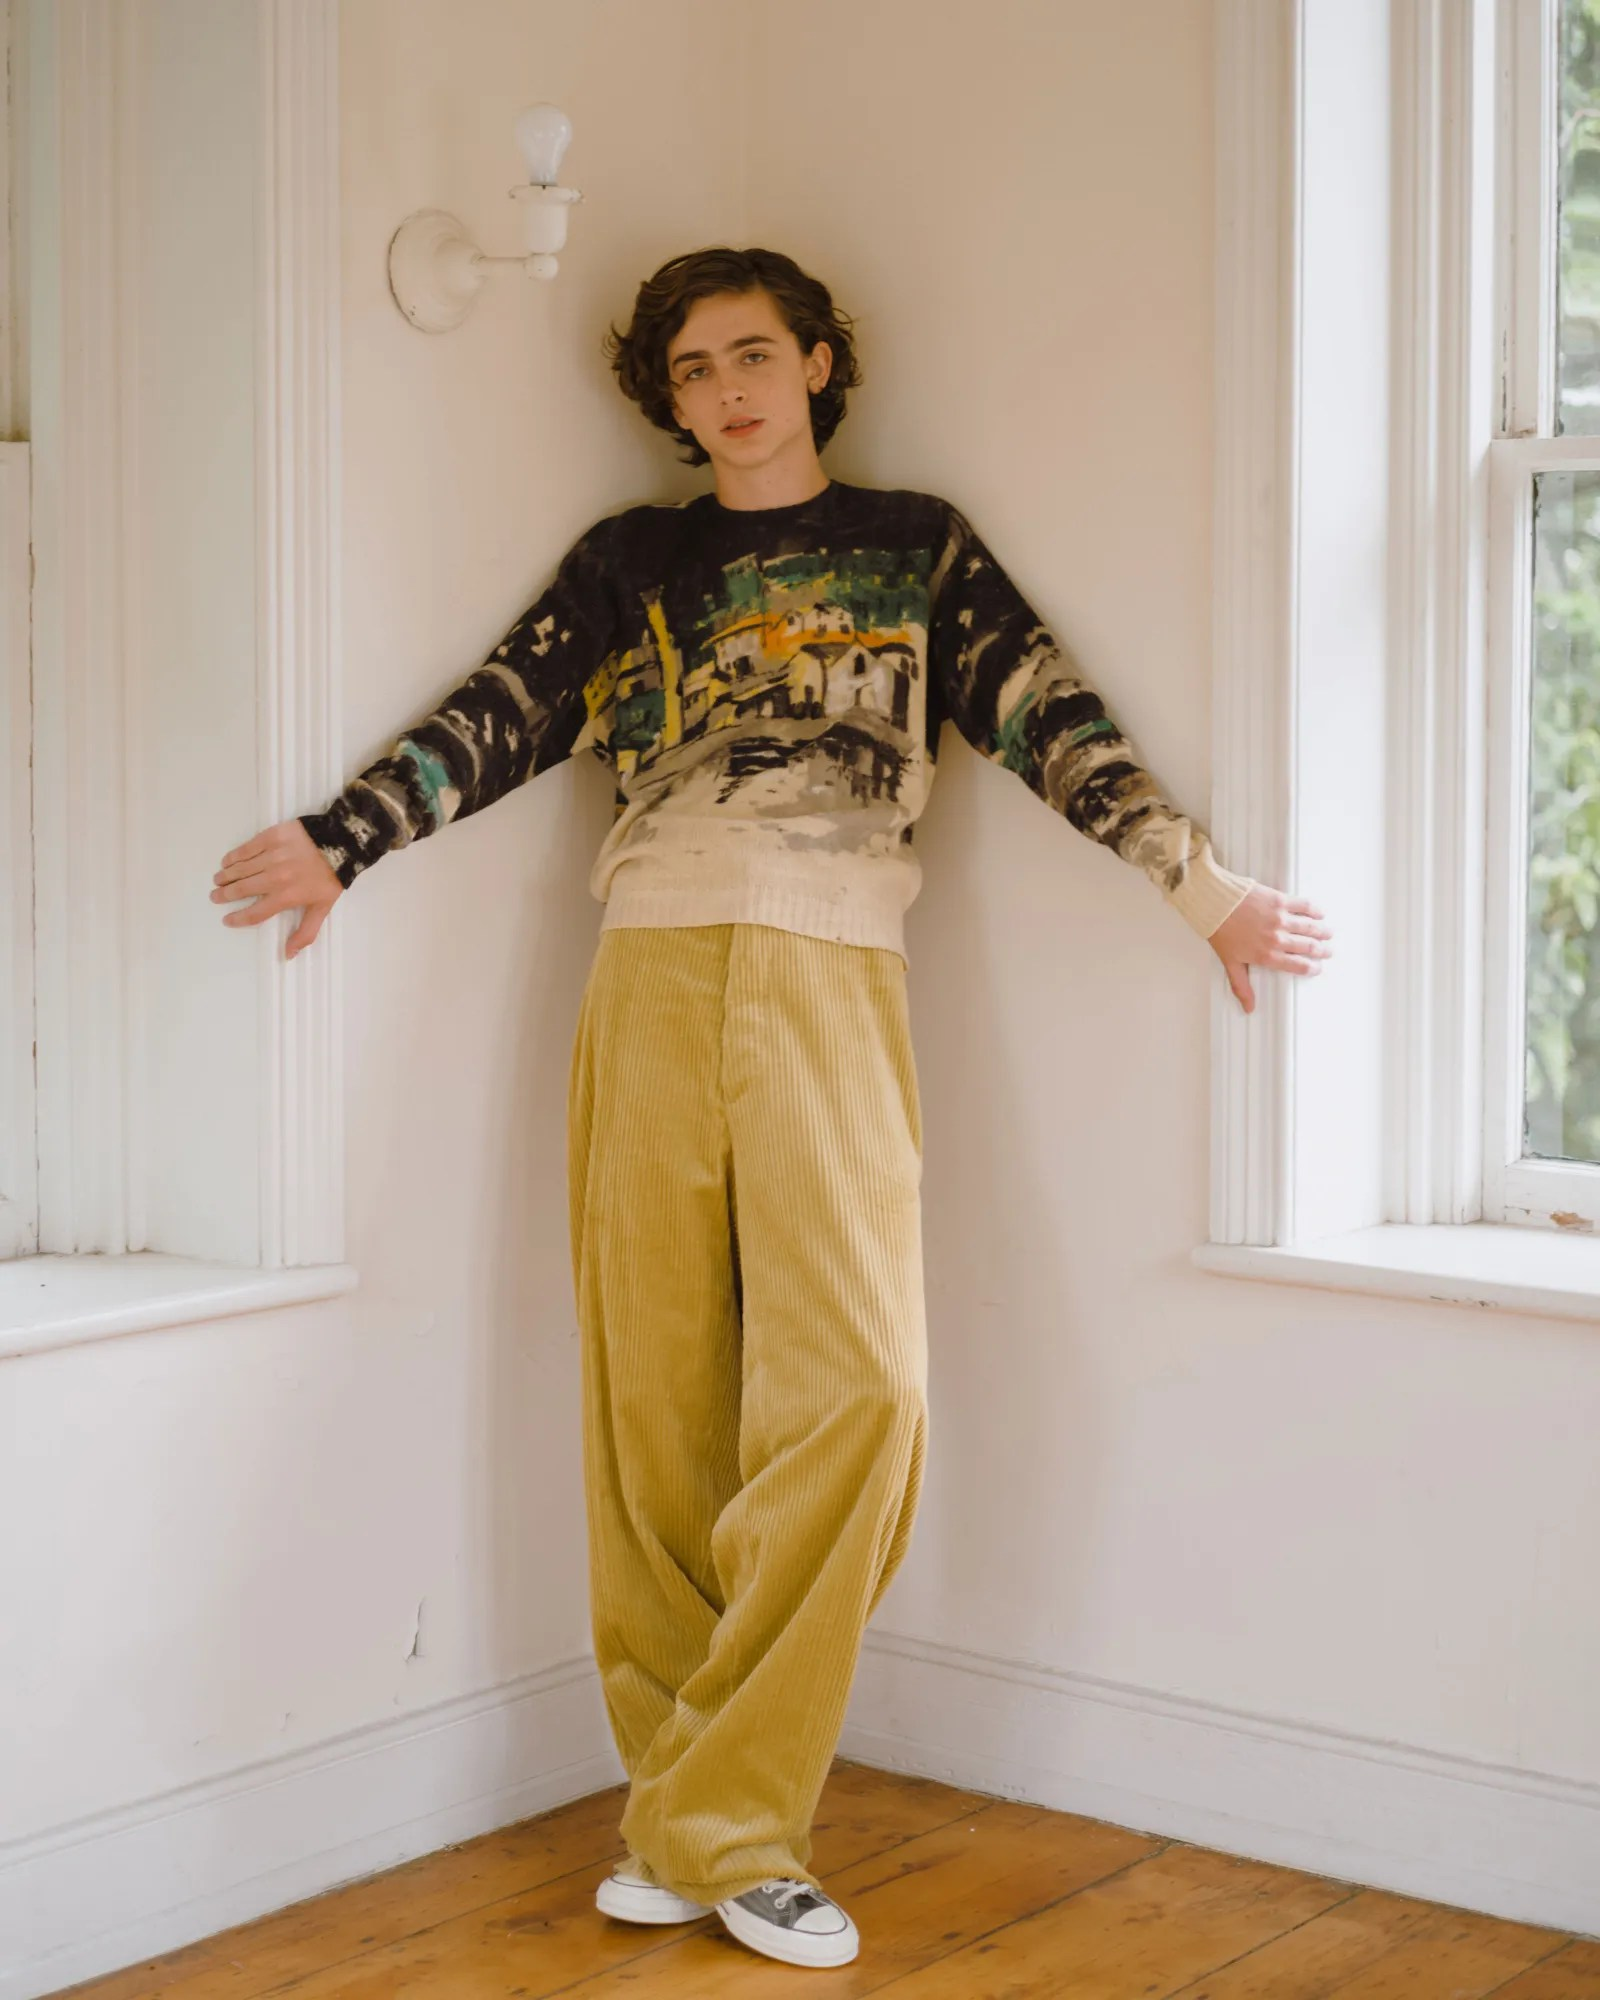 Call Me By Your Name Vo : Name's, Timothée, Chalamet, Having, Vogue